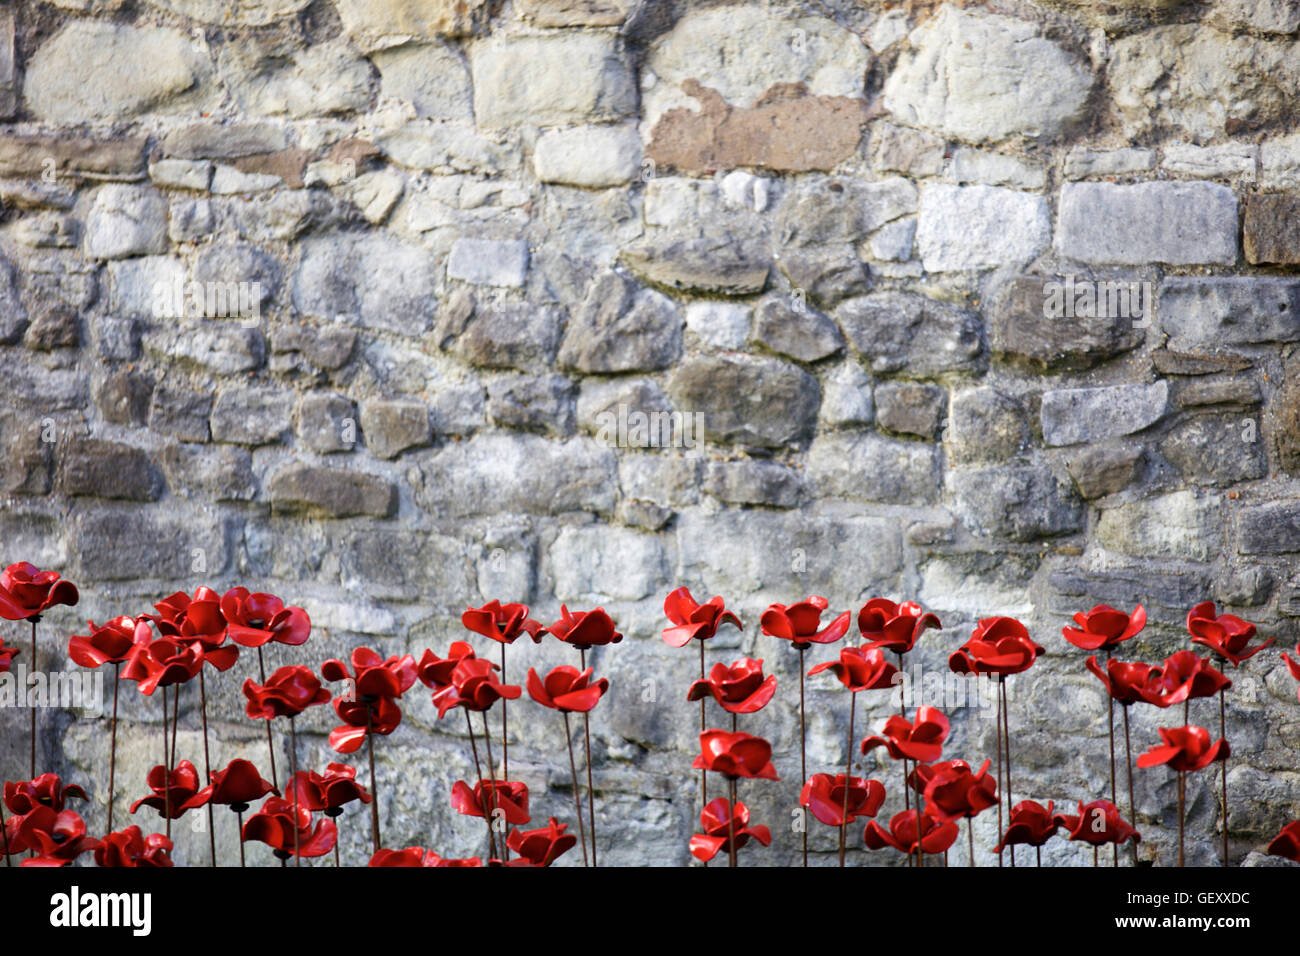 Poppies from Blood Swept Lands and Seas of Red art installation at the Tower of London marking 100 years since the - Stock Image